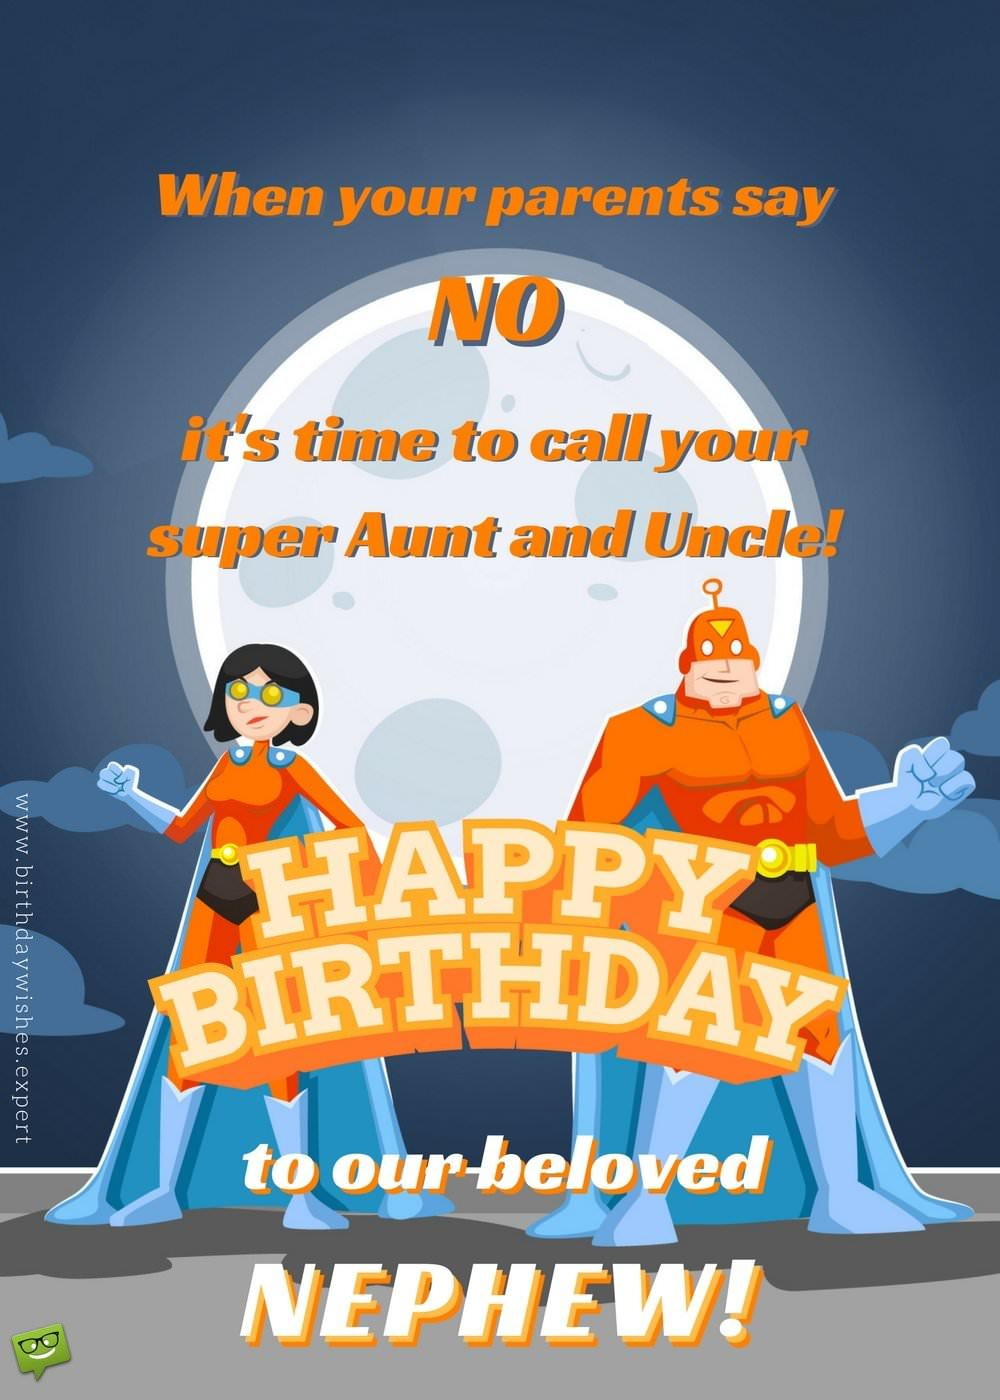 Stupendous Funny Birthday Wish For Nephew With Super Heroes Funny Birthday Cards Online Fluifree Goldxyz